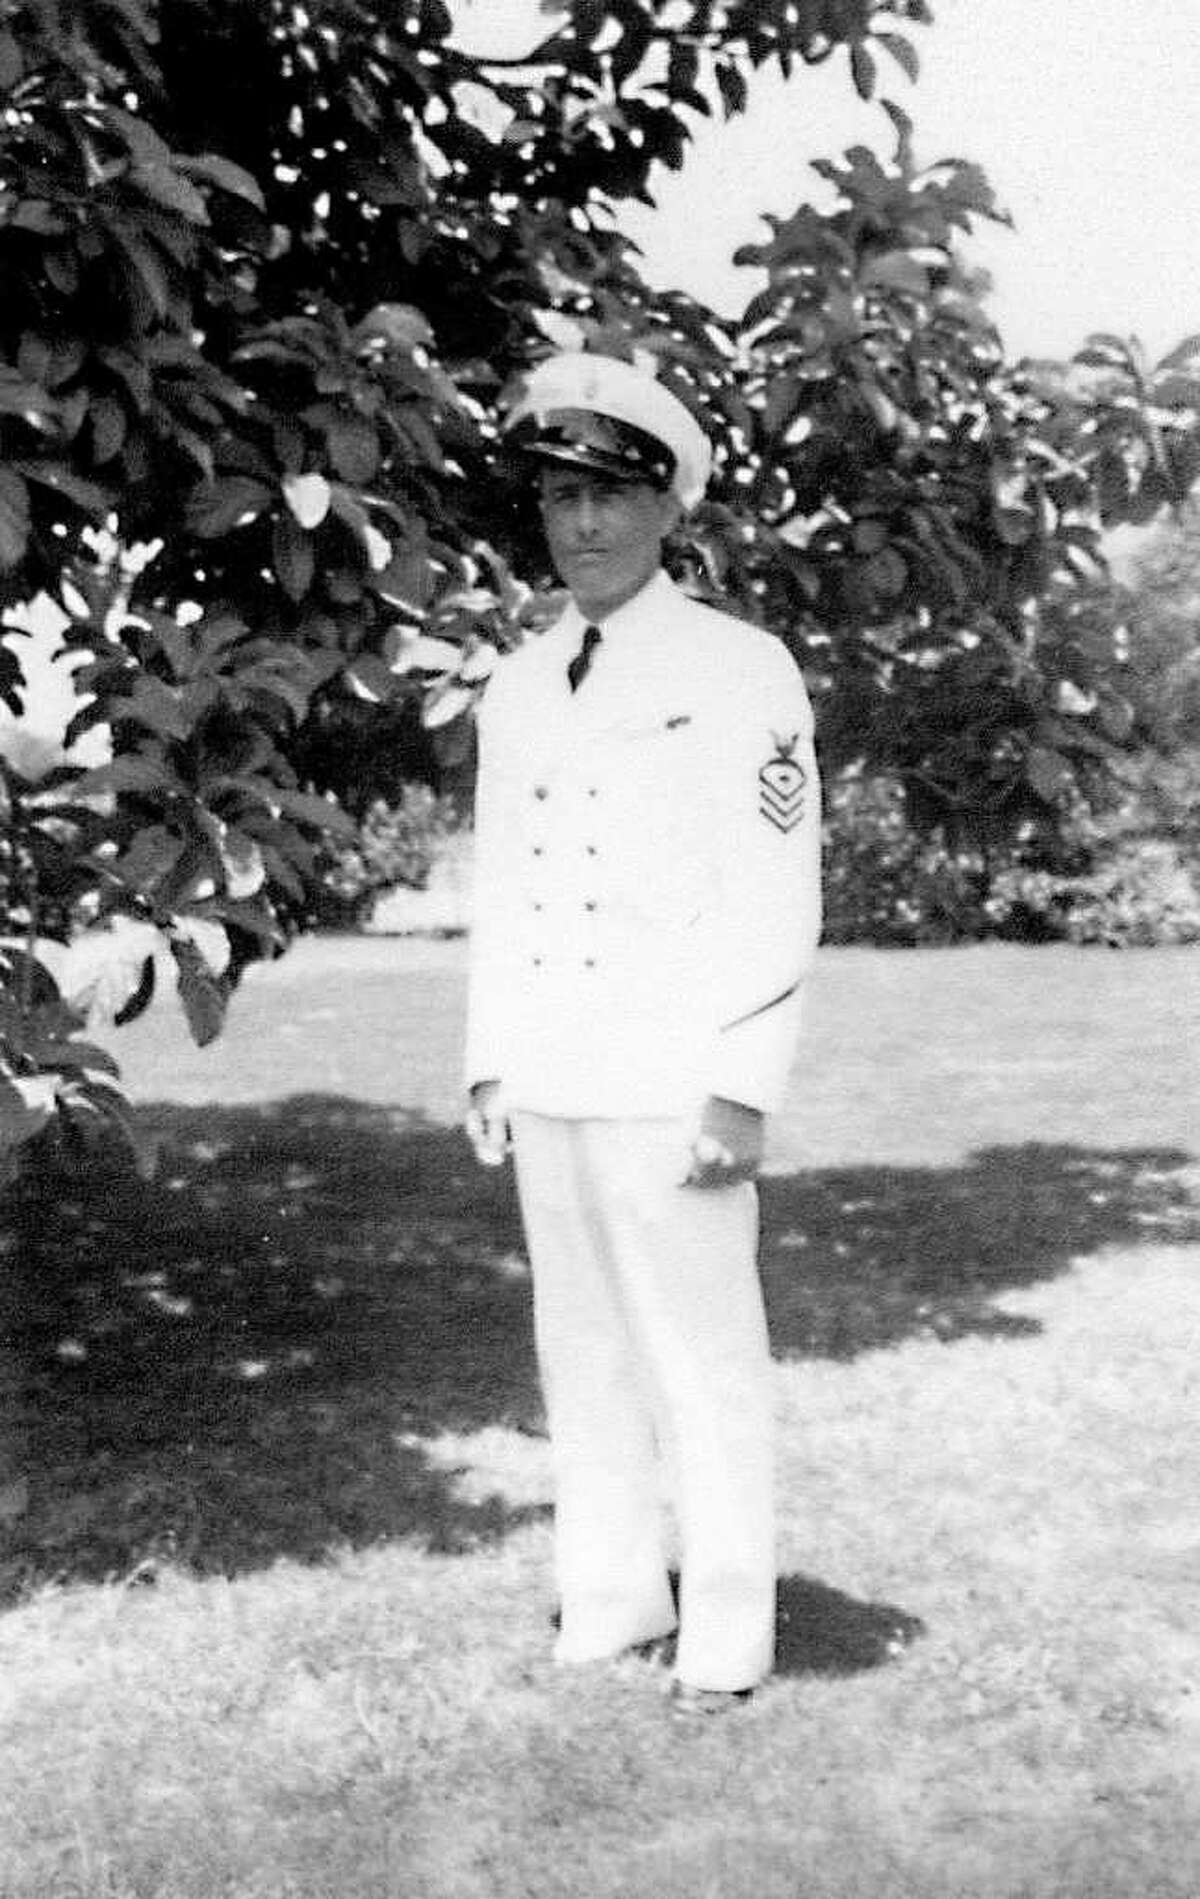 In this undated photo provided by Pacific Historic Parks, Pearl Harbor survivor Lee Soucy is shown. In accordance with his wishes, Soucy's ashes are being interred on the USS Utah, his ship that sank during the attack and is still sitting in Pearl Harbor.